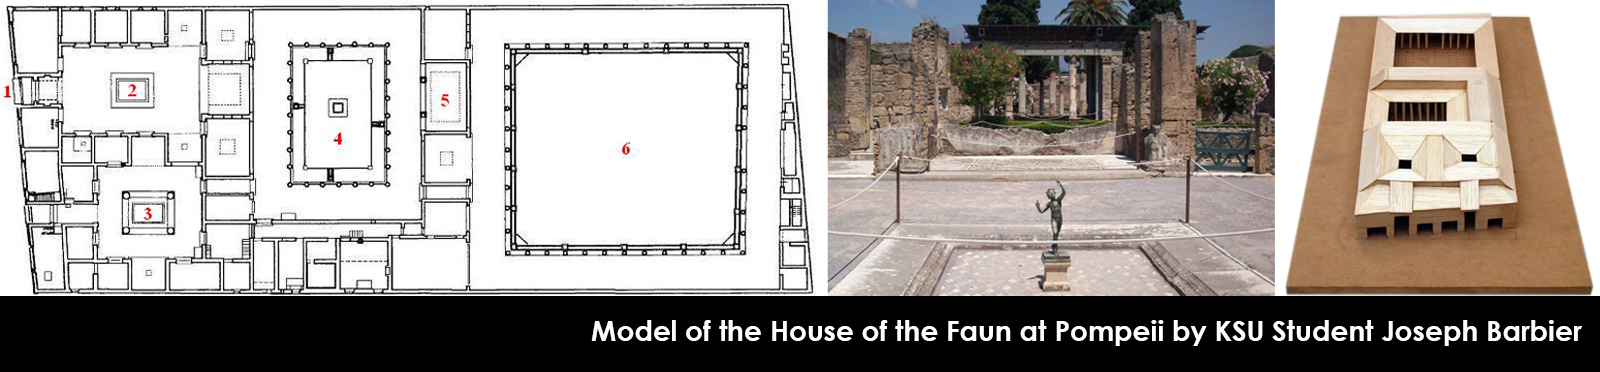 Model of the House of the Faun at Pompeii by KSU Student Joseph Barbier